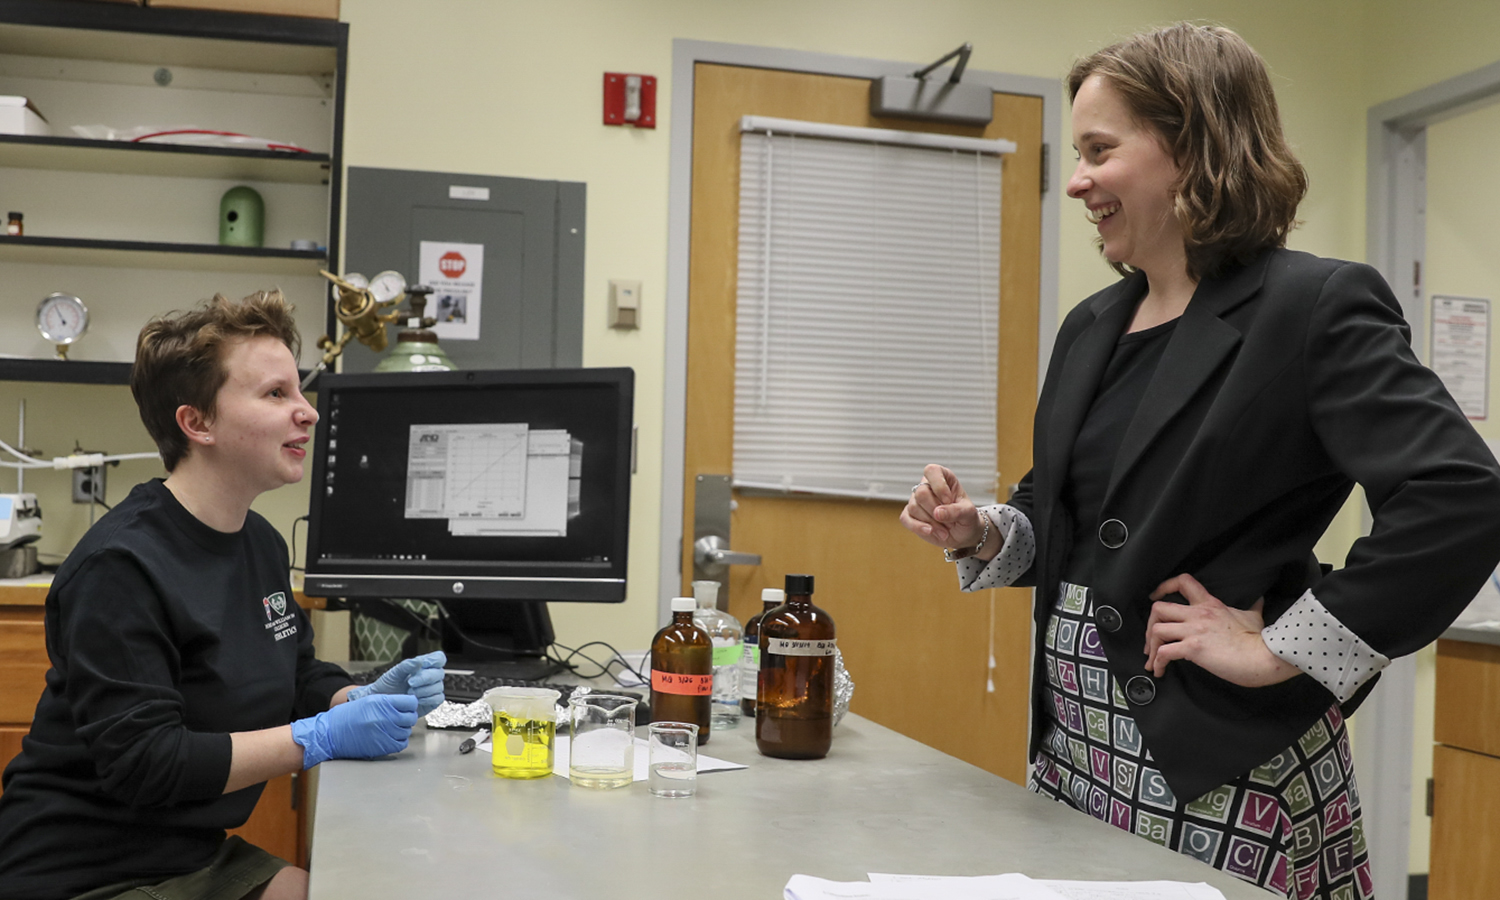 Meg Quint '21 chats with Assistant Professor of Chemistry Elana Stennett in Rosenberg Hall. Quint and Stennett are researching the relationship between fluorescently-labeled proteins and the biofouling of membranes during desalination.